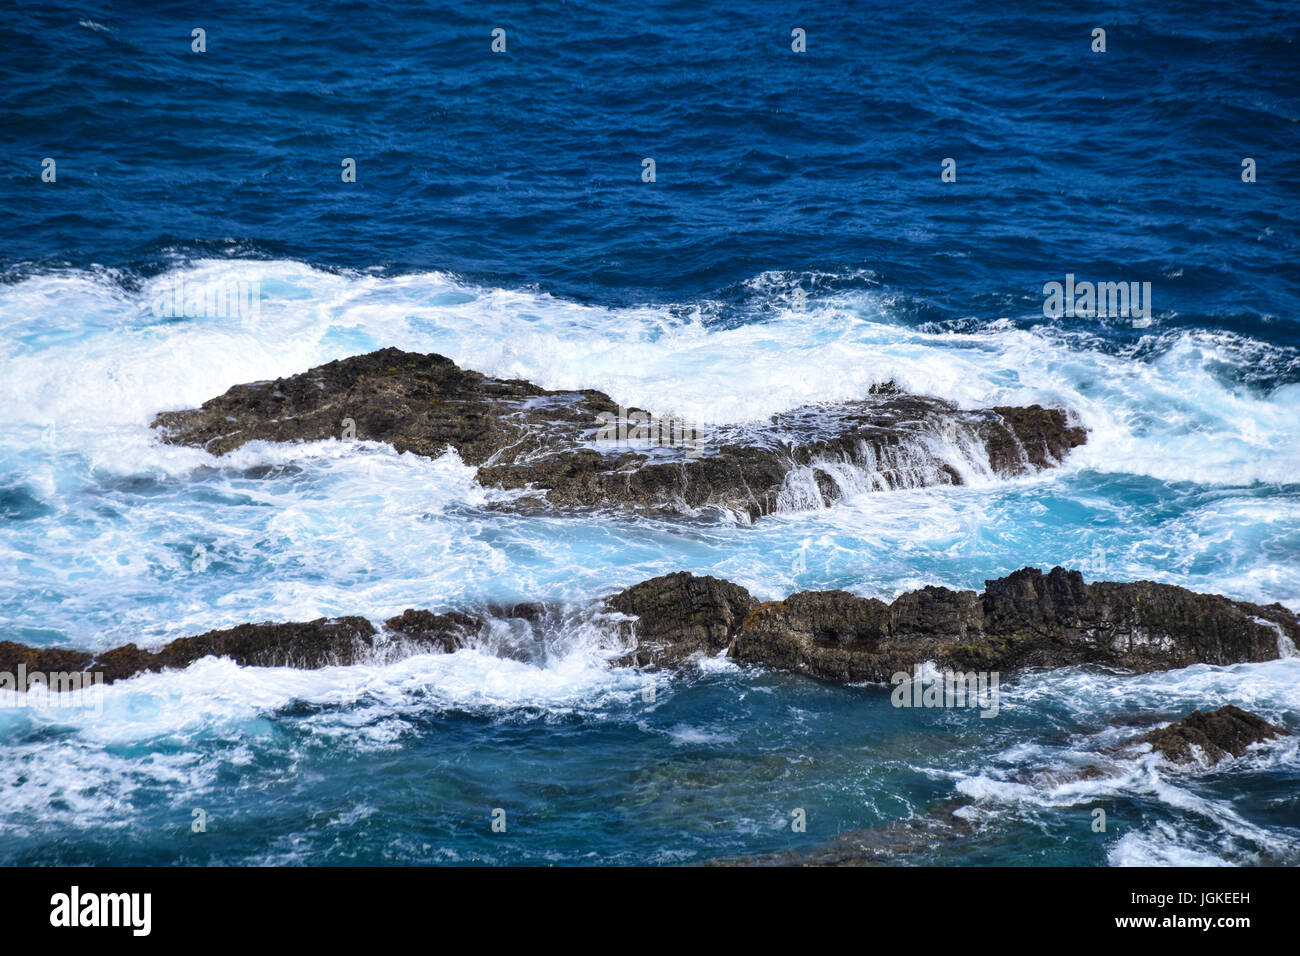 Waves breaking over rocks at Fonte Da Areia, Porto Santo, Portugal - Stock Image